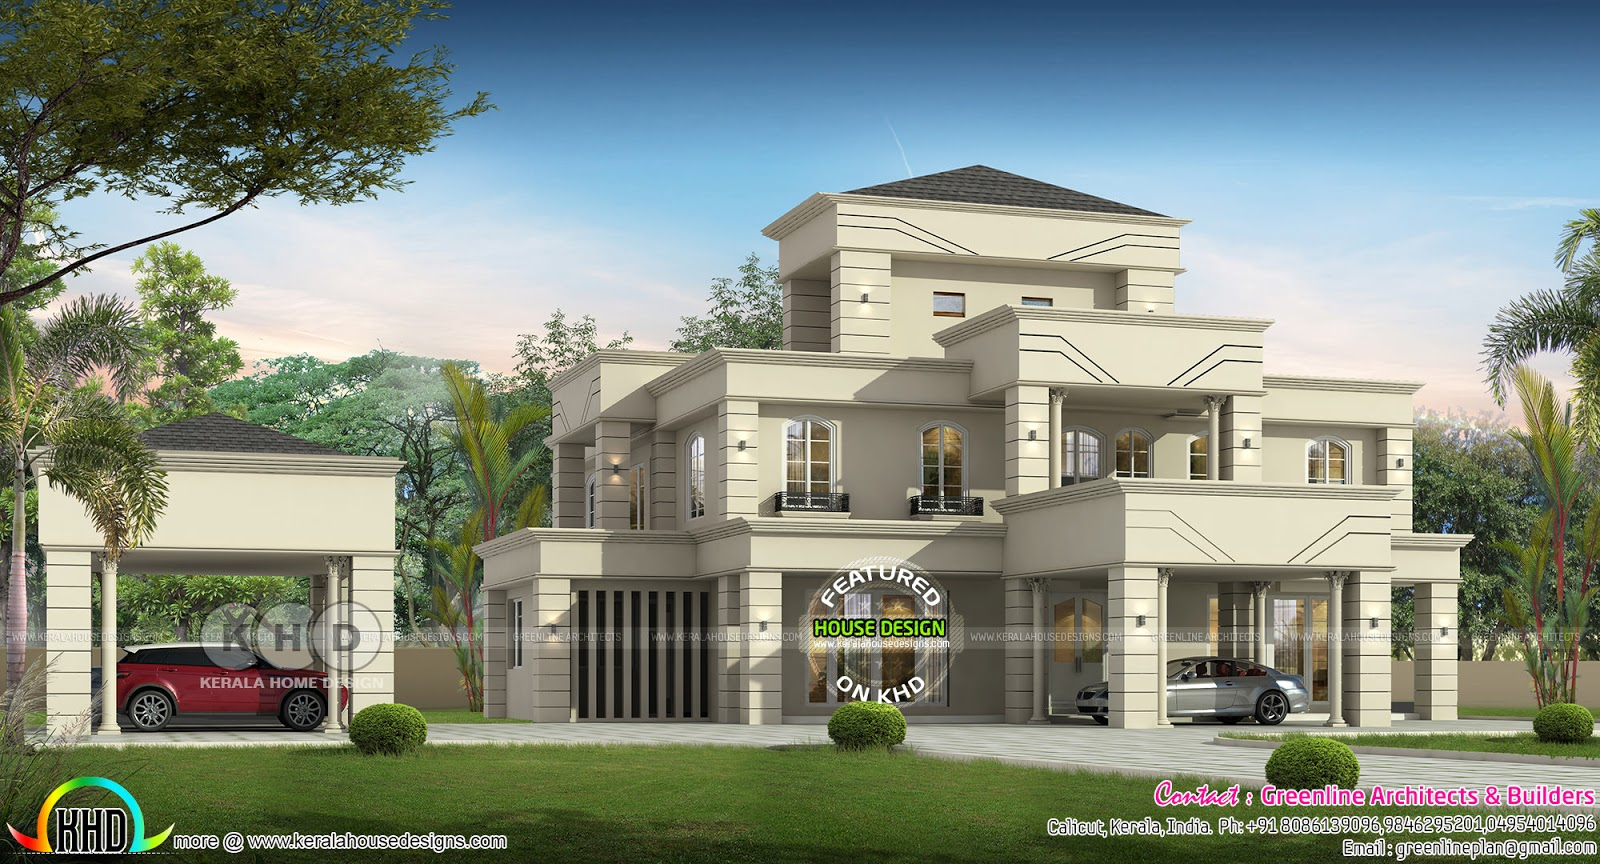 Luxury colonial house with 6 bedrooms kerala home design bloglovin rh com